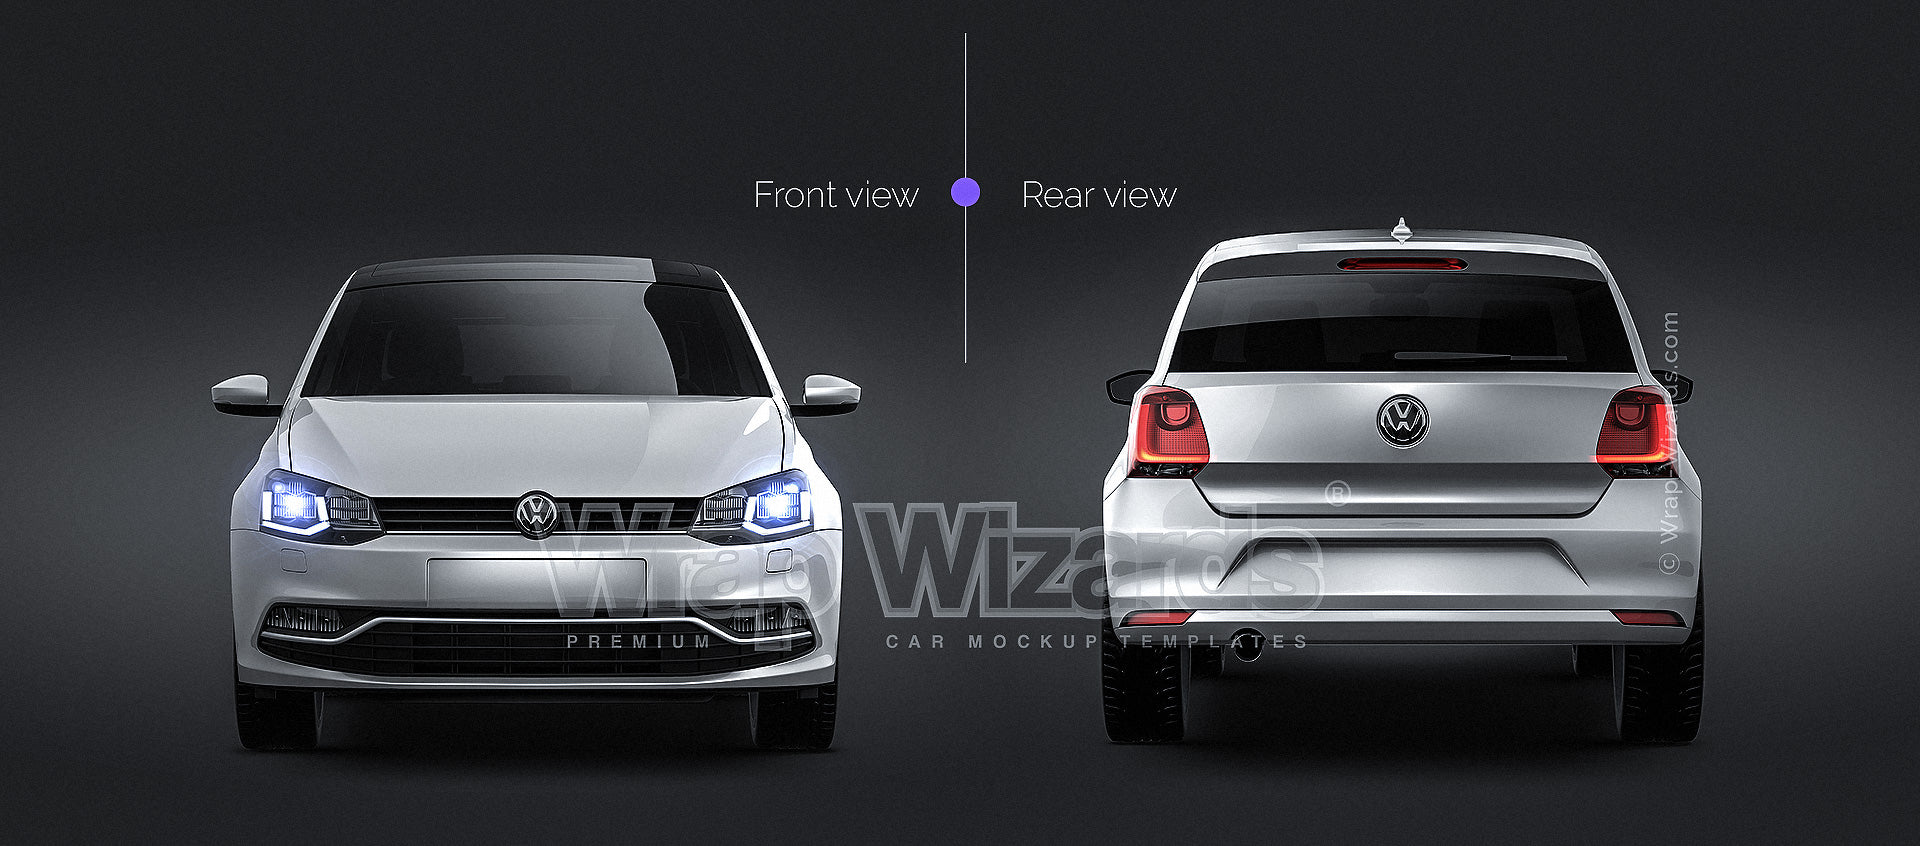 Volkswagen Polo 5-door 2015 glossy finish - all sides Car Mockup Template.psd